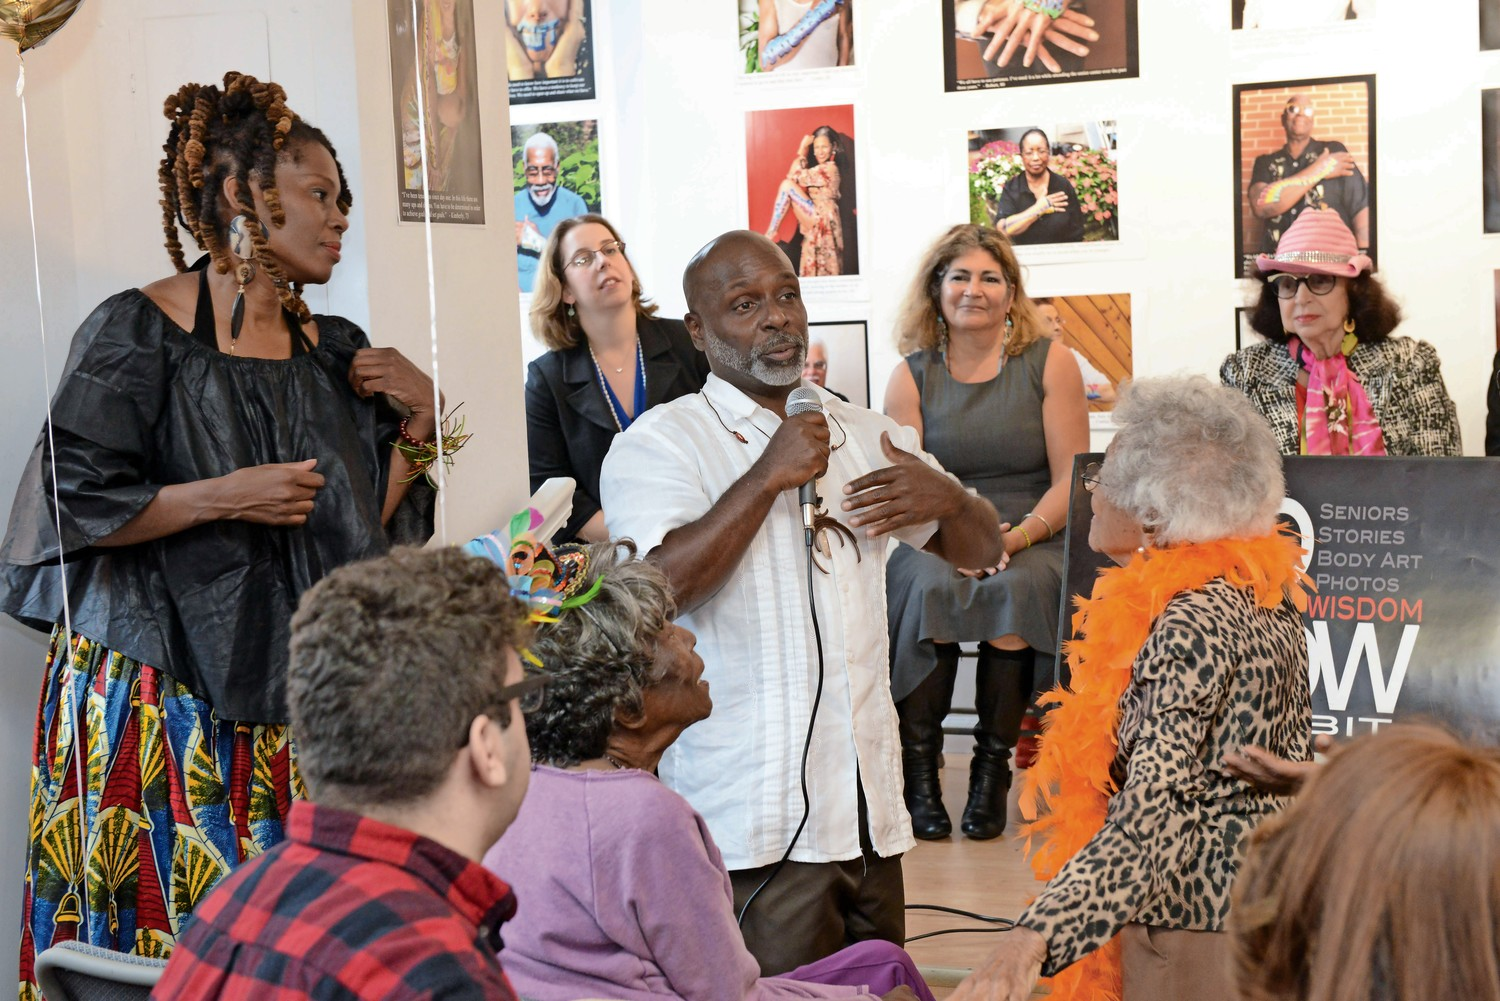 Evan Bishop speaks at the opening of his exhibition for '100 Words of Wisdom' last year. For the series, Bishop and his partner Katori Walker asked elderly people to share one word of wisdom, which Bishop and Walker then painted on each person.